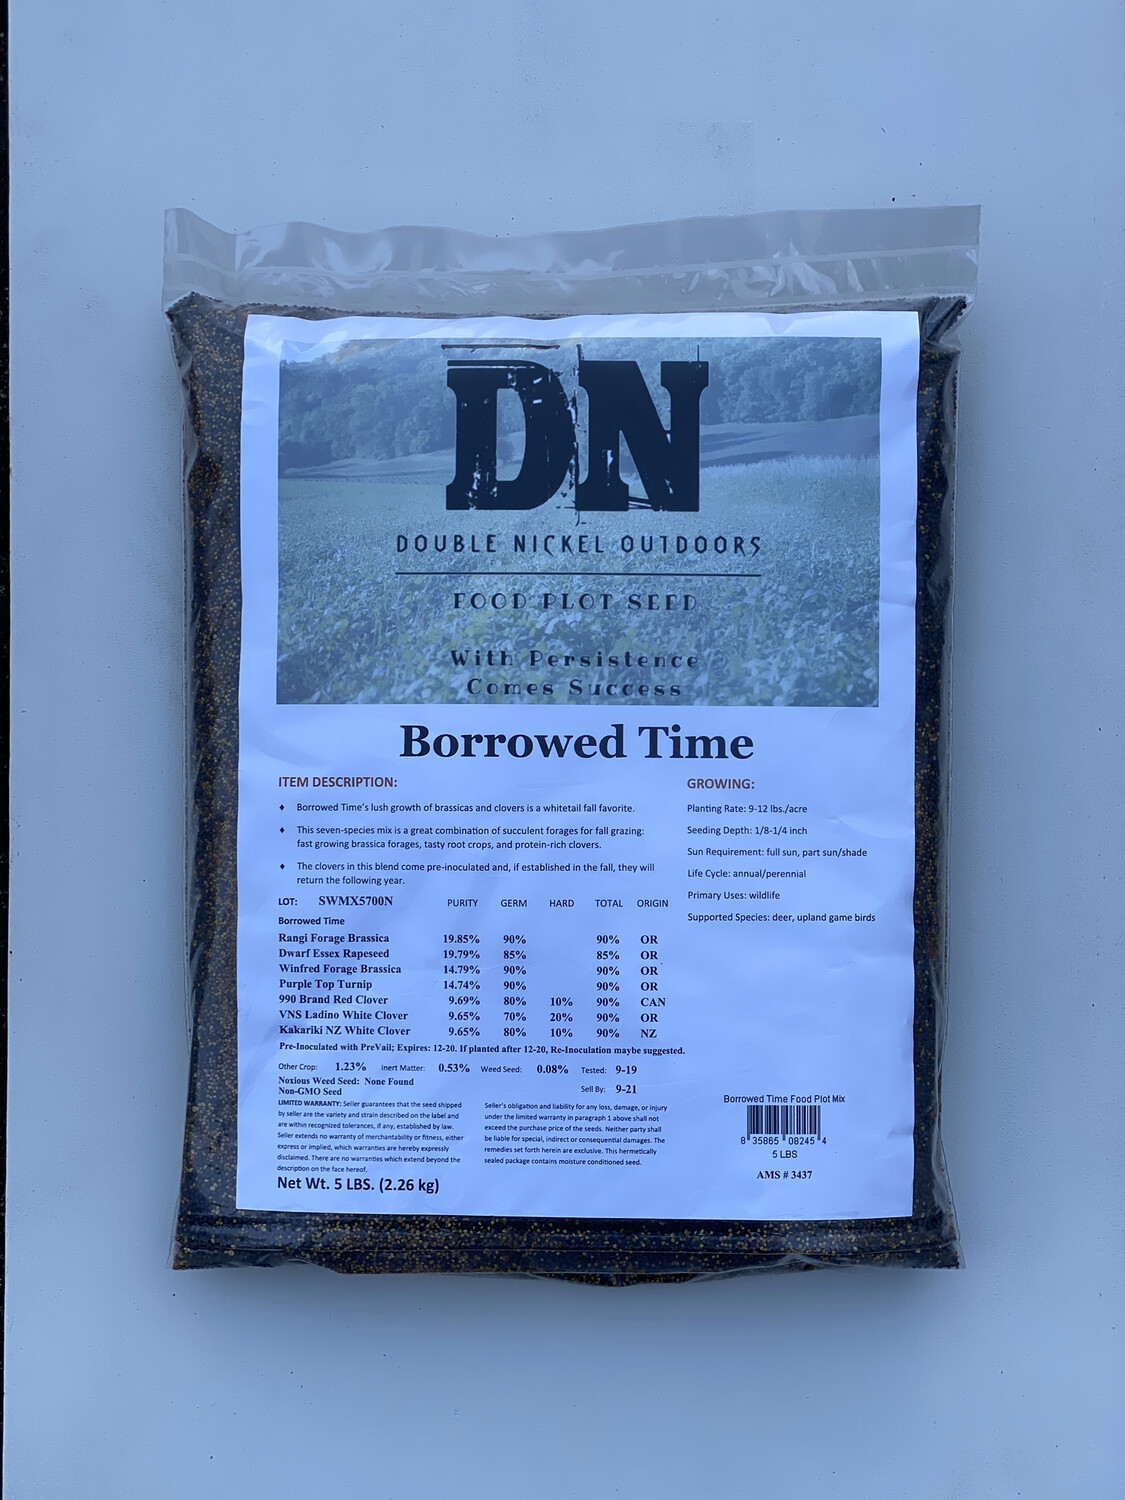 Borrowed Time Seed 5lb Bag